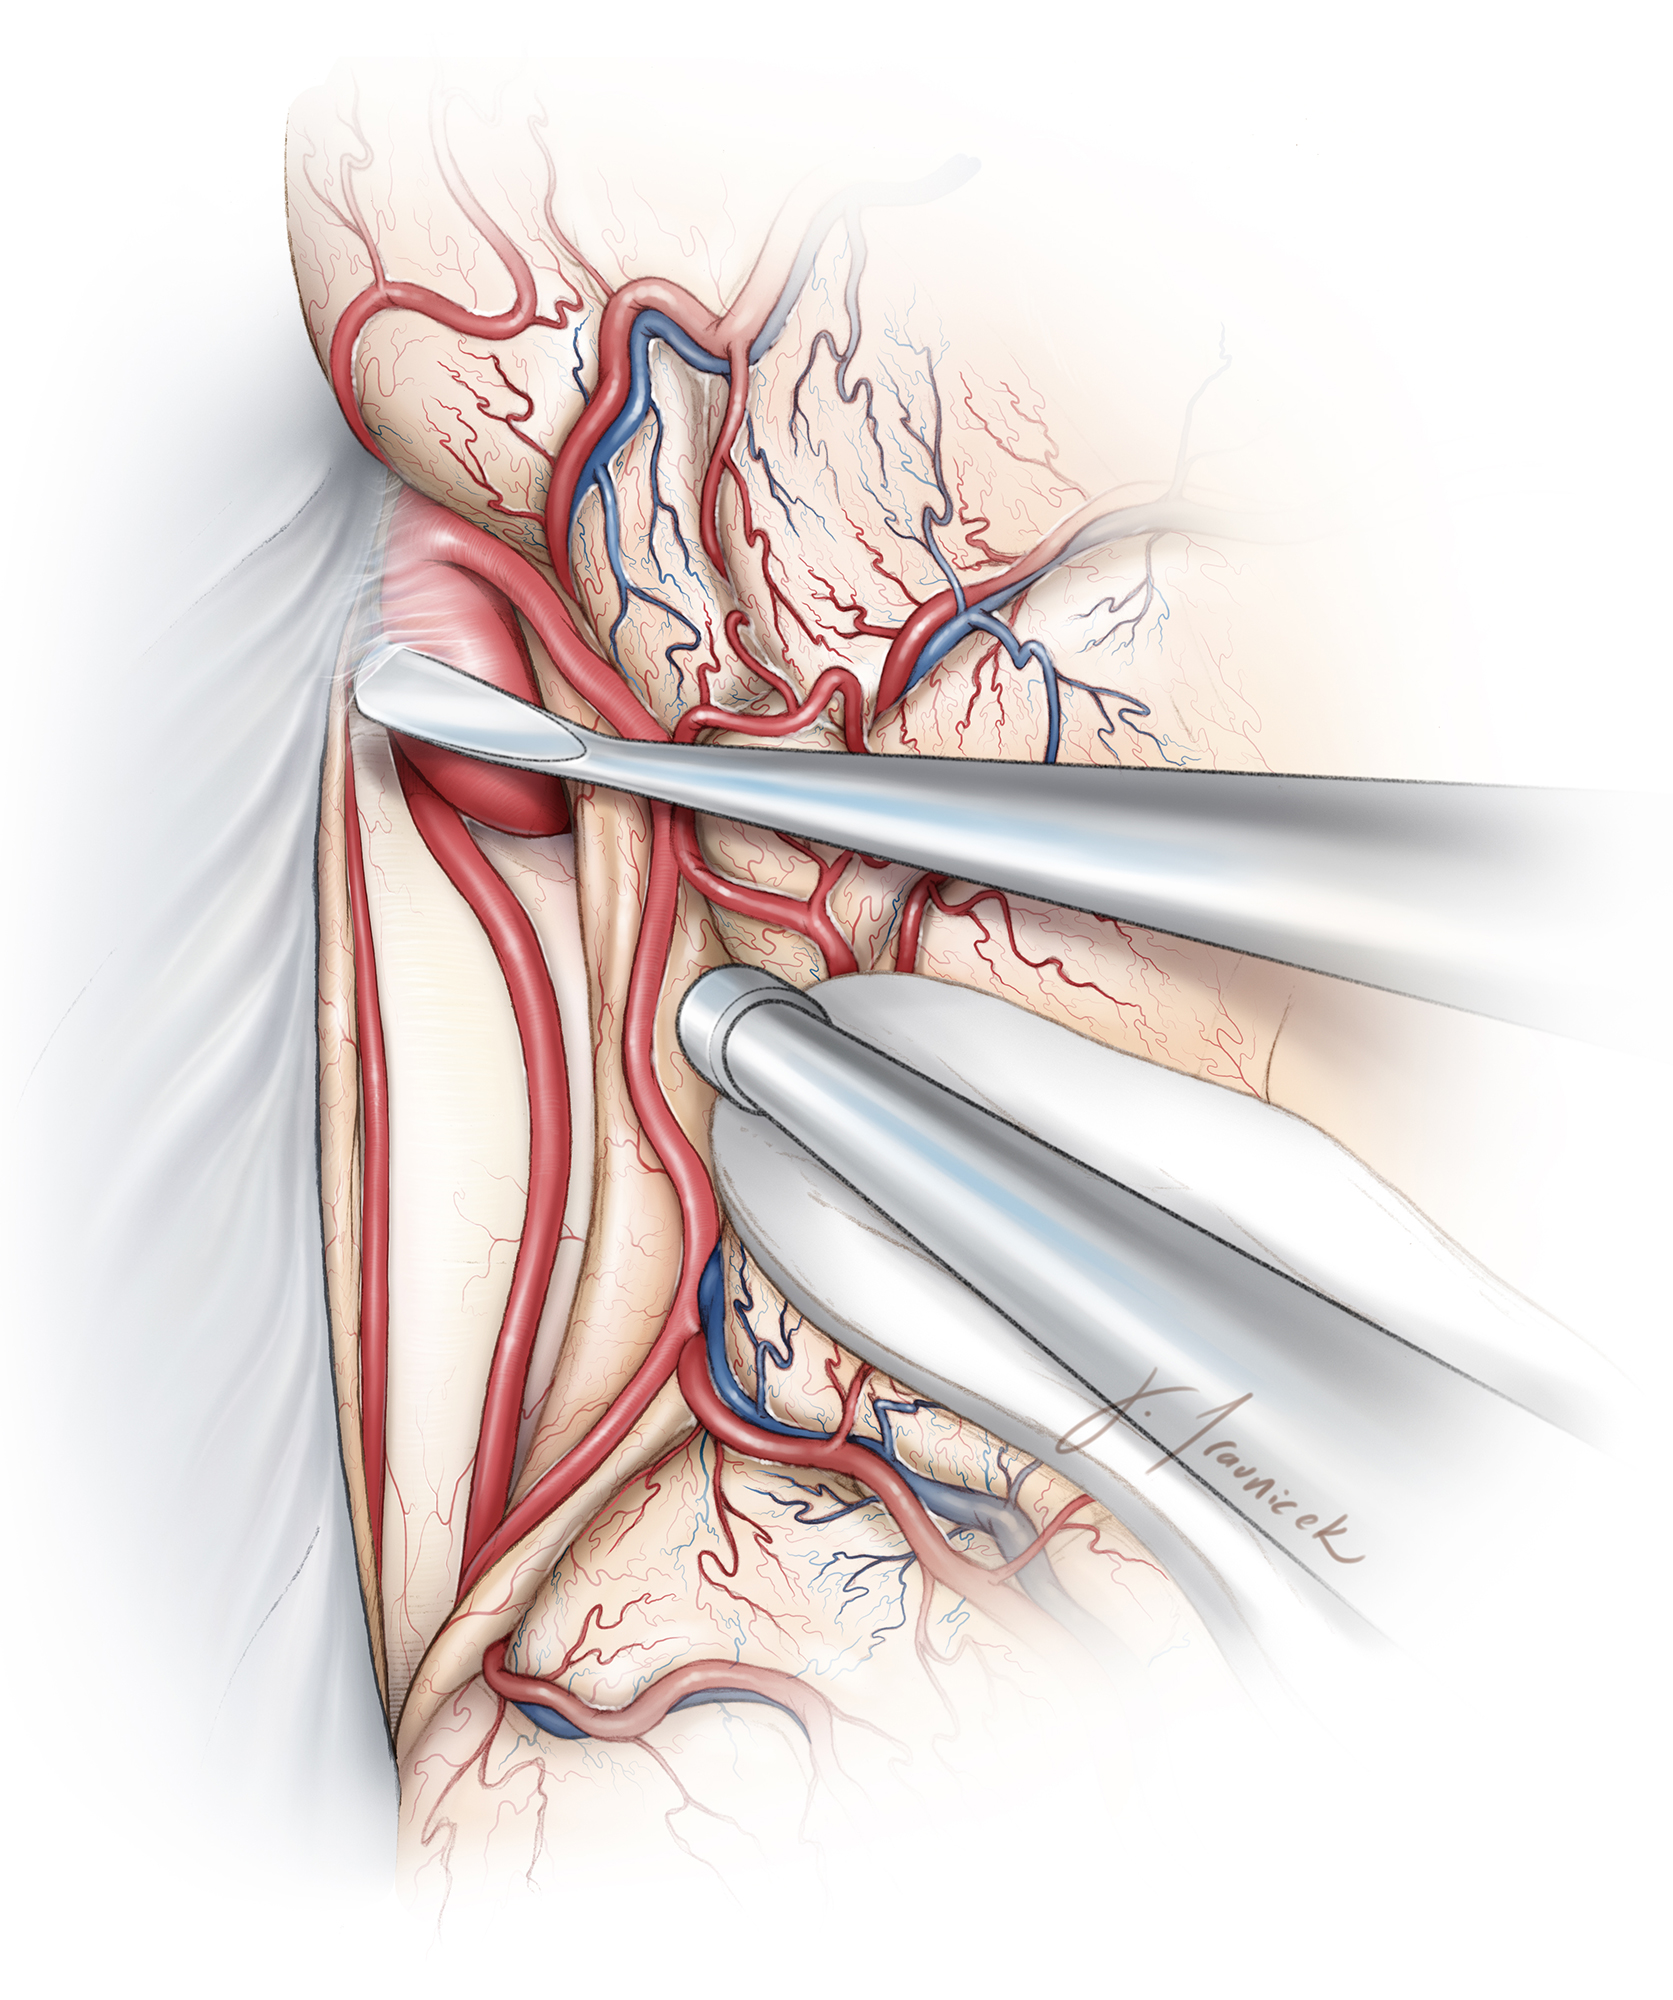 Figure 9: After the pericallosal arteries are identified, dissection proceeds anteriorly. It is important to stay close to the arteries and avoid wandering over the aneurysm dome. The dissection is pursued on the side of the aneurysm rather than directly on the dome. The projection of the aneurysm on preoperative imaging guides the operator to avoid the dome.